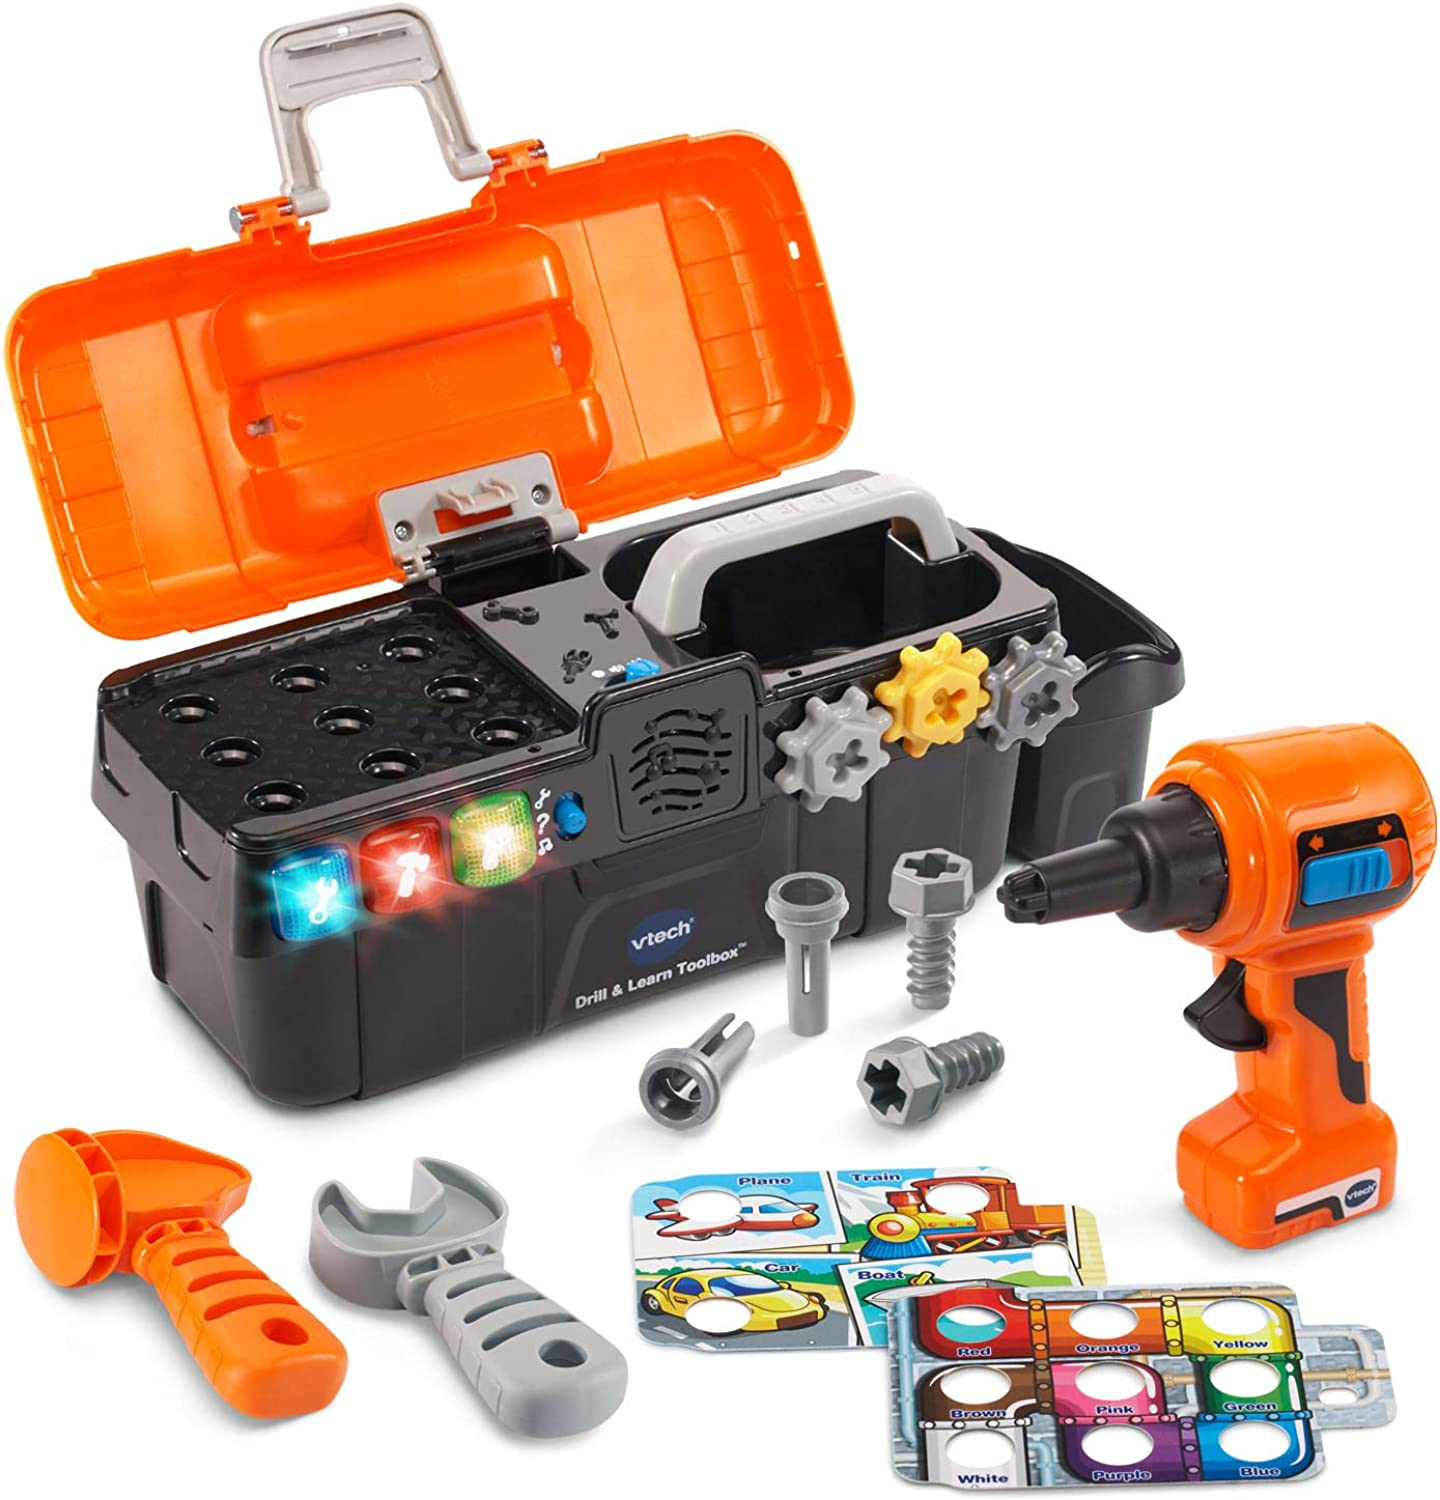 VTech Drill & Learn Toolbox  Online Exclusive